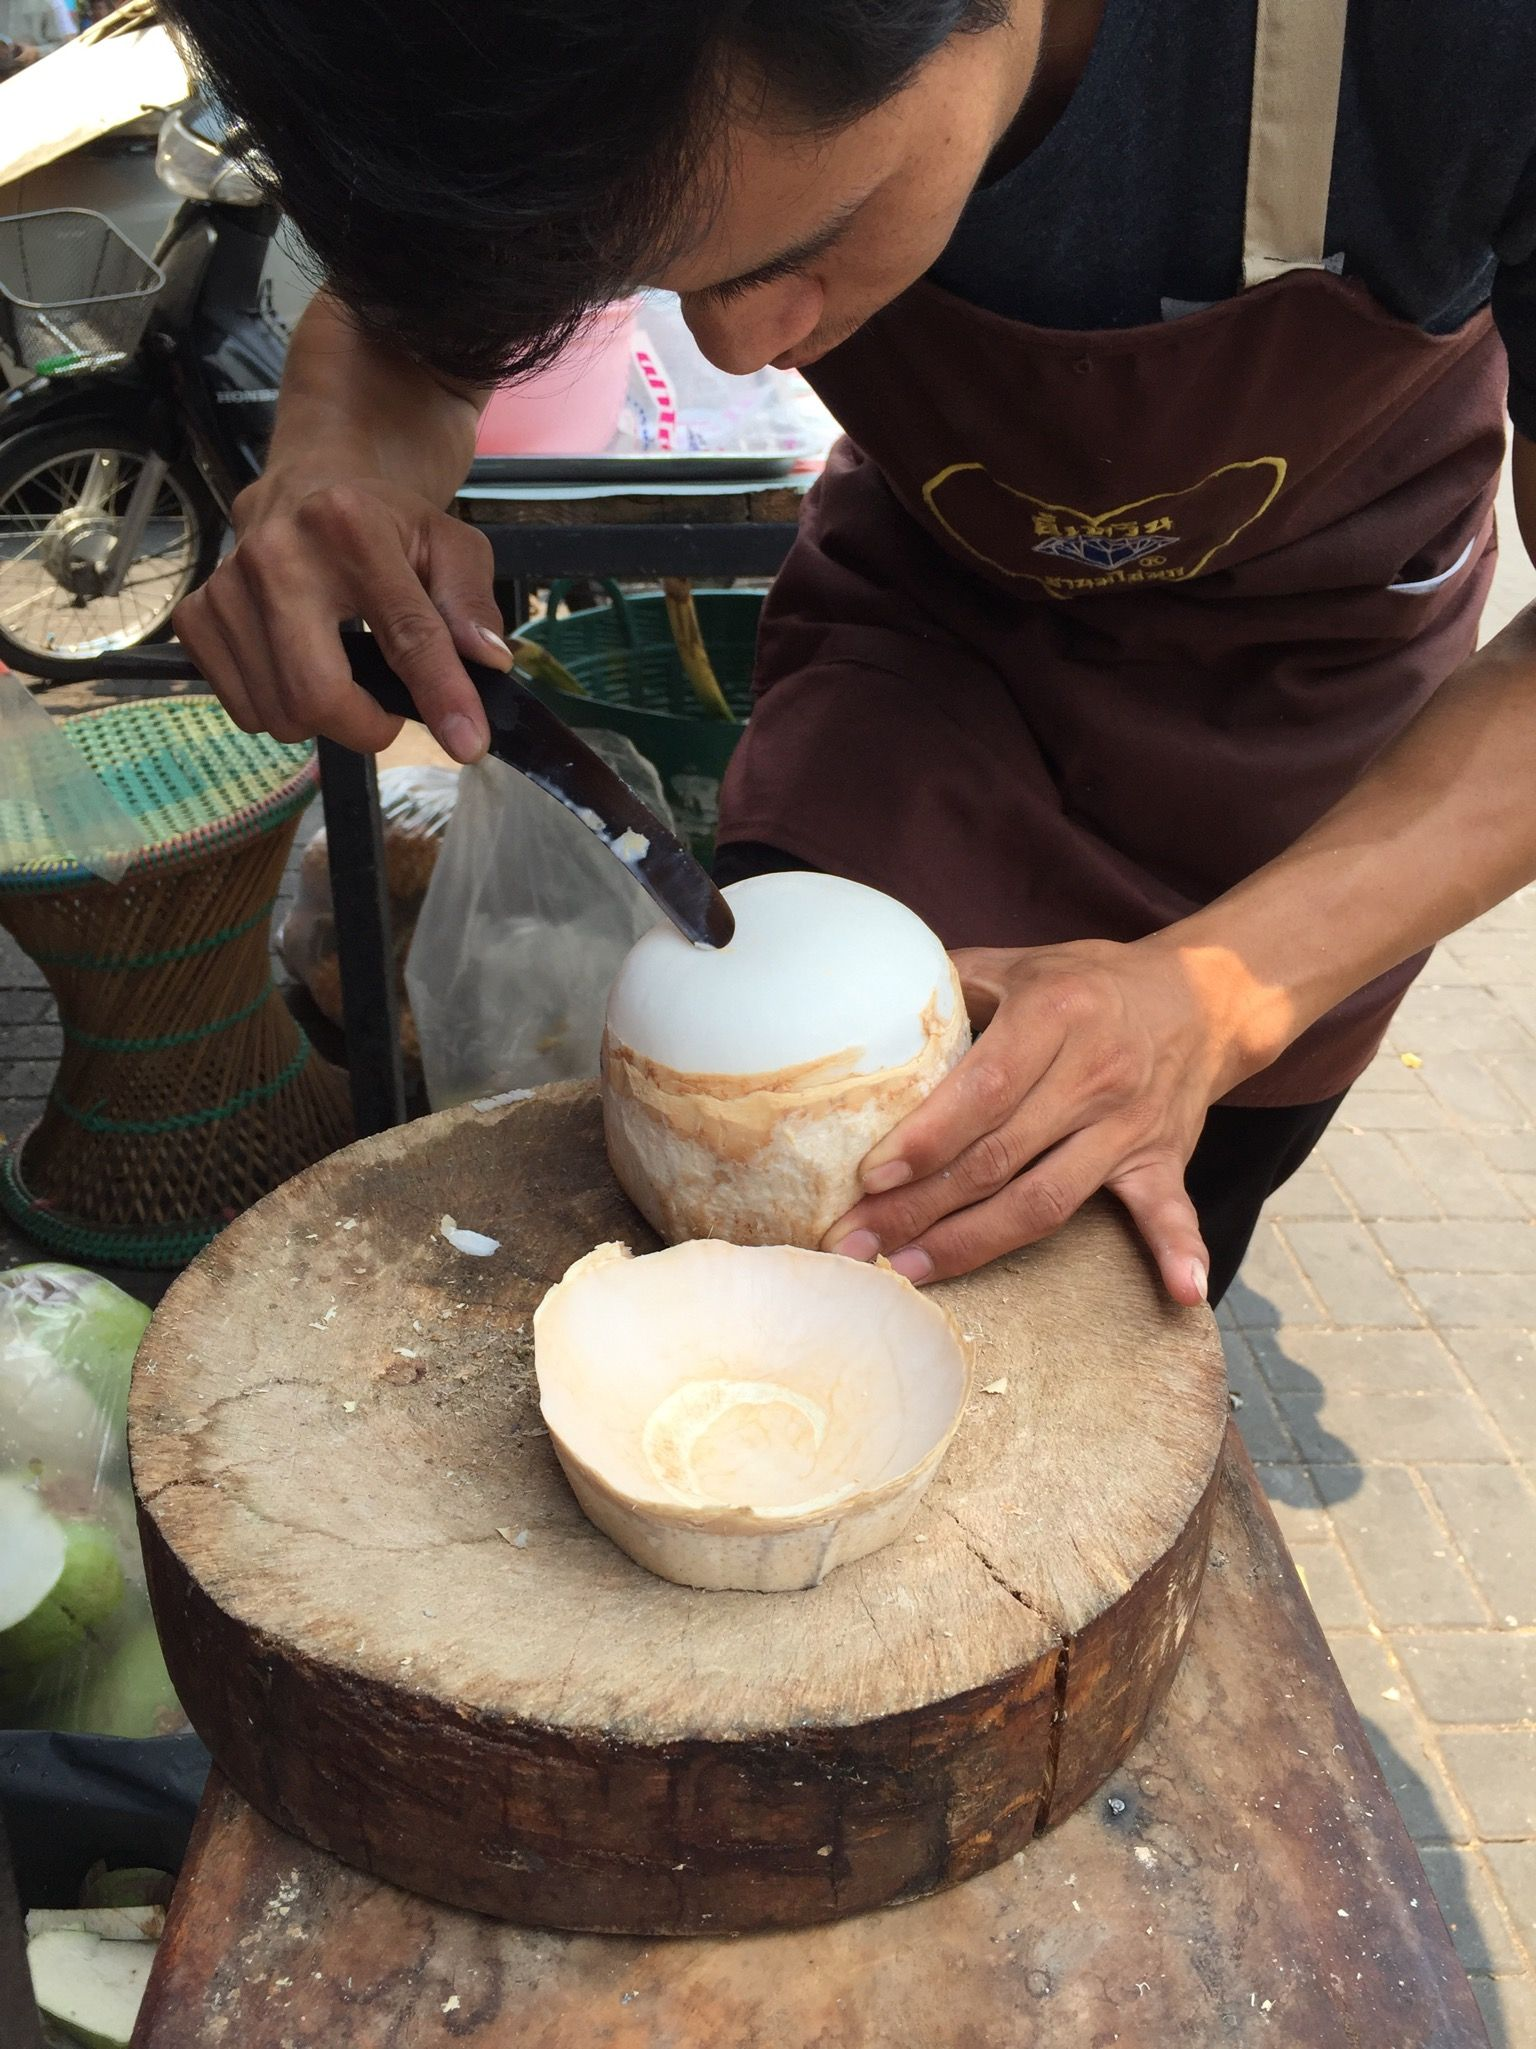 We took 3-4 hour walking food tour with Gade, owner of Elliebum Guest House. She mixed history with food, highly recommend. In this photo a guy is carving down a coconut to the skin, and you can stick a straw in and drink it.   http://elliebum.com/Elliebum.htm